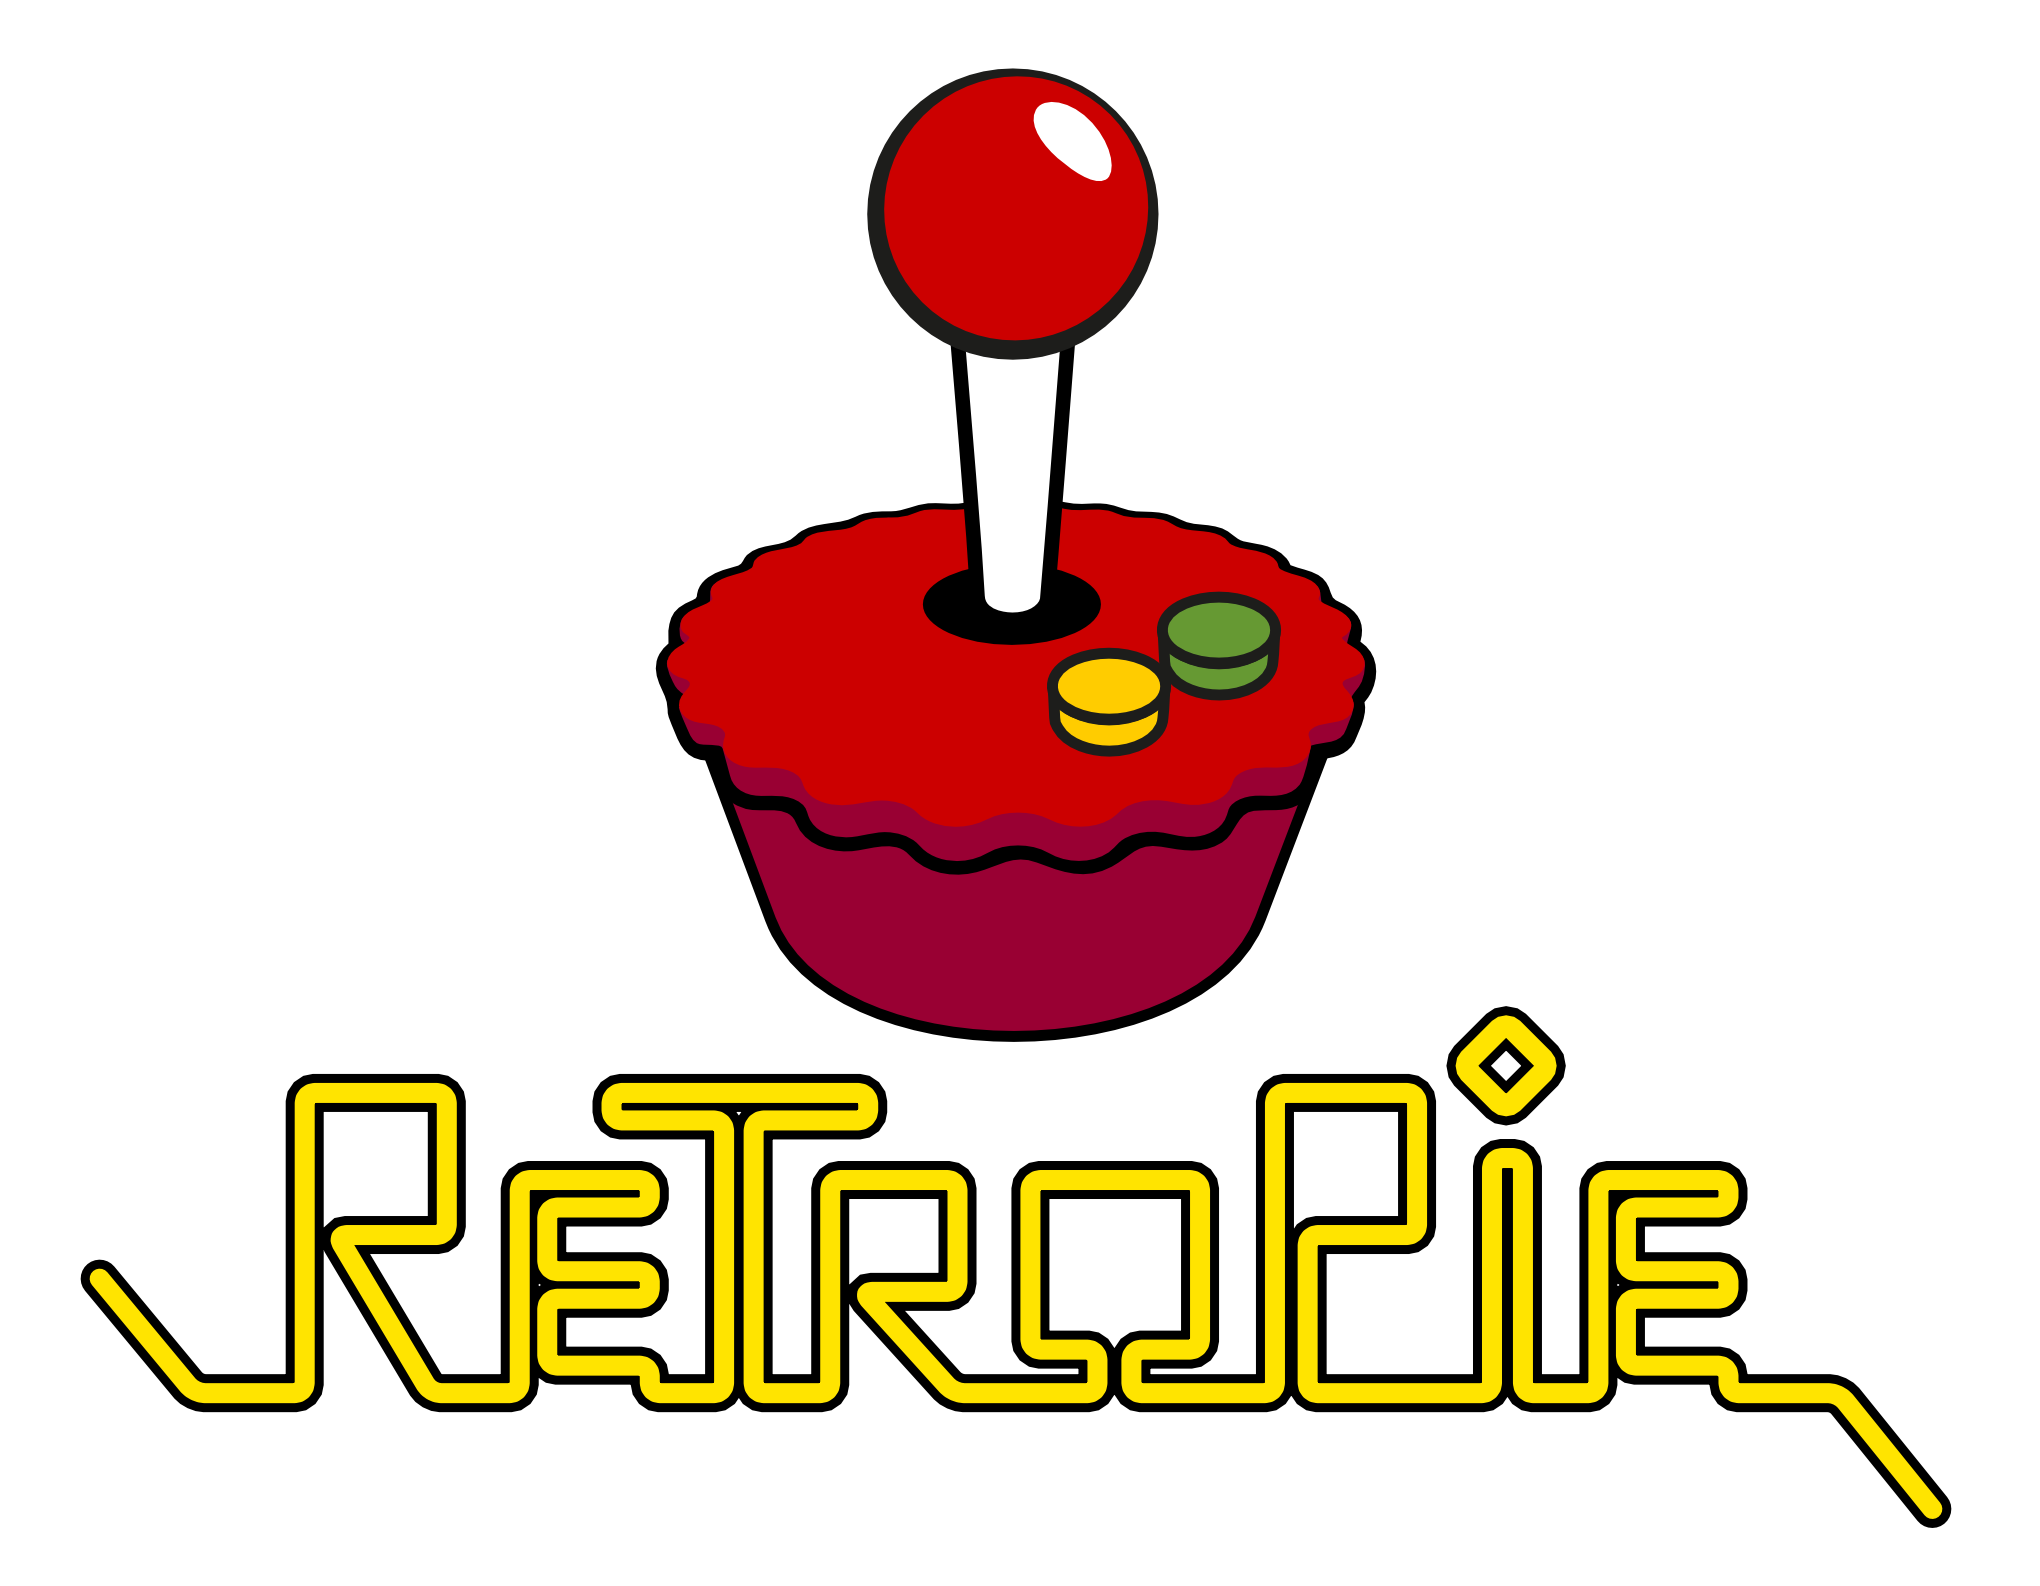 RetroPieLogo2015Download